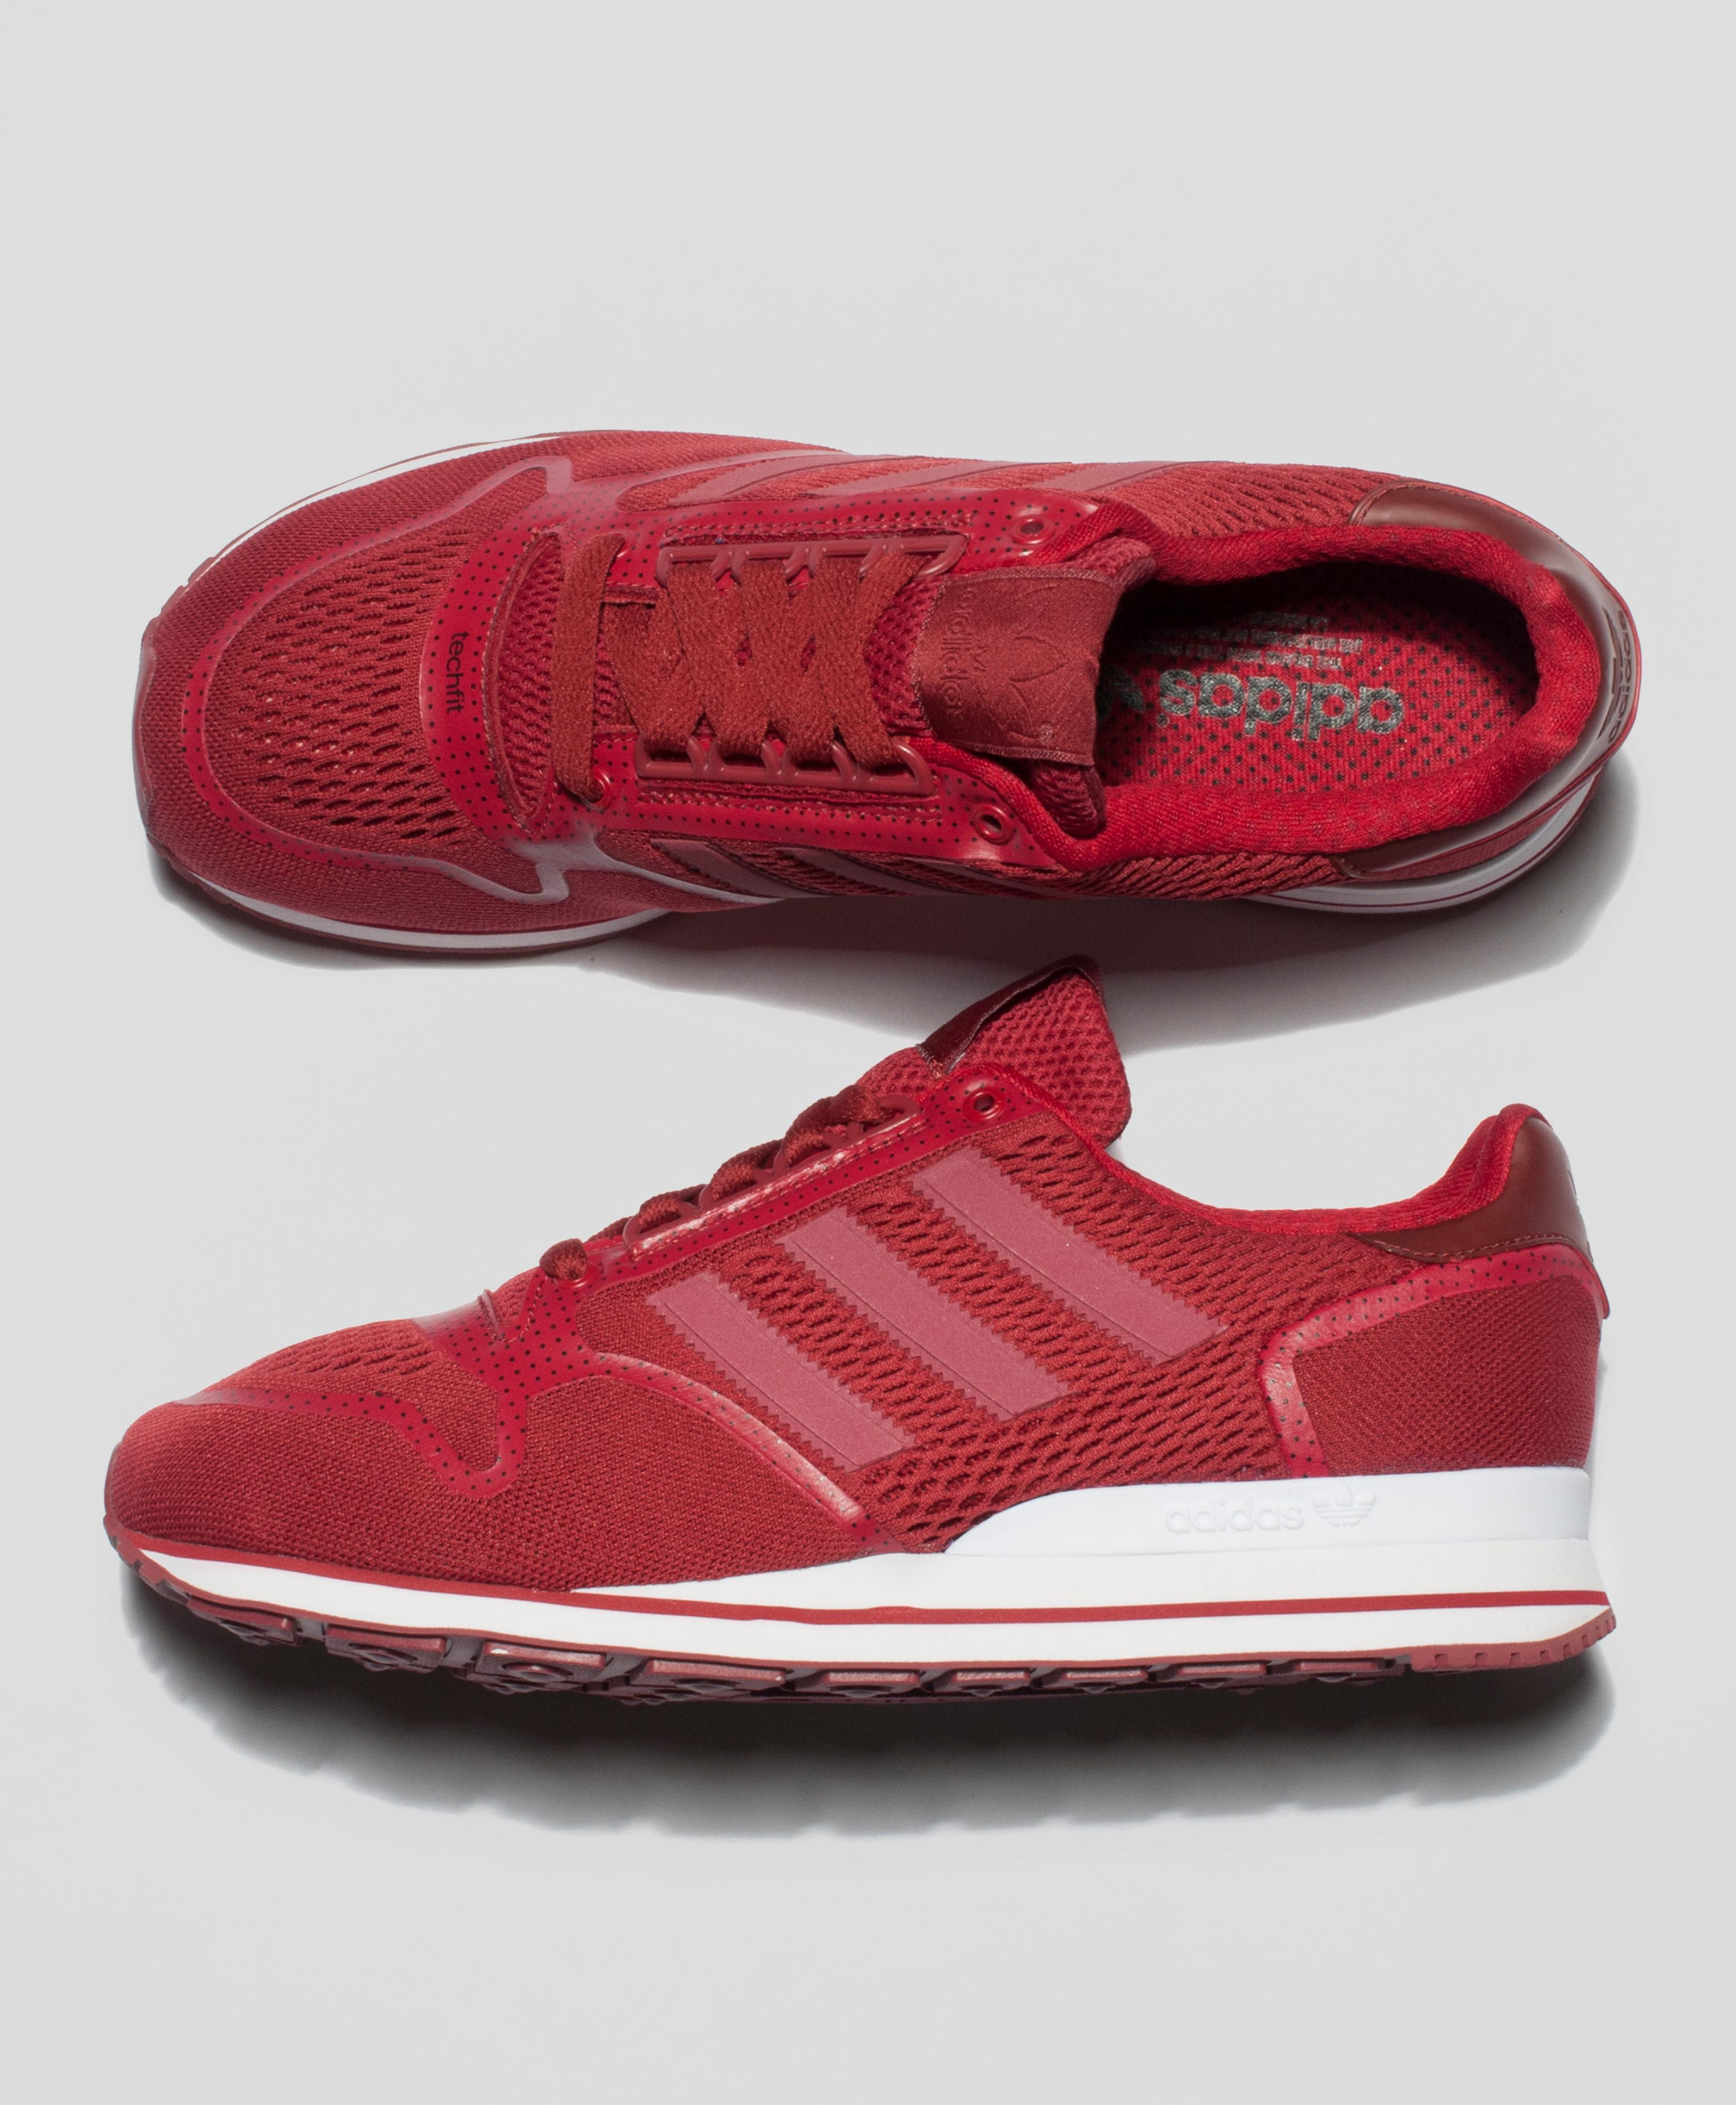 adidas zx 500 techfit off 58% charcuterie tradition